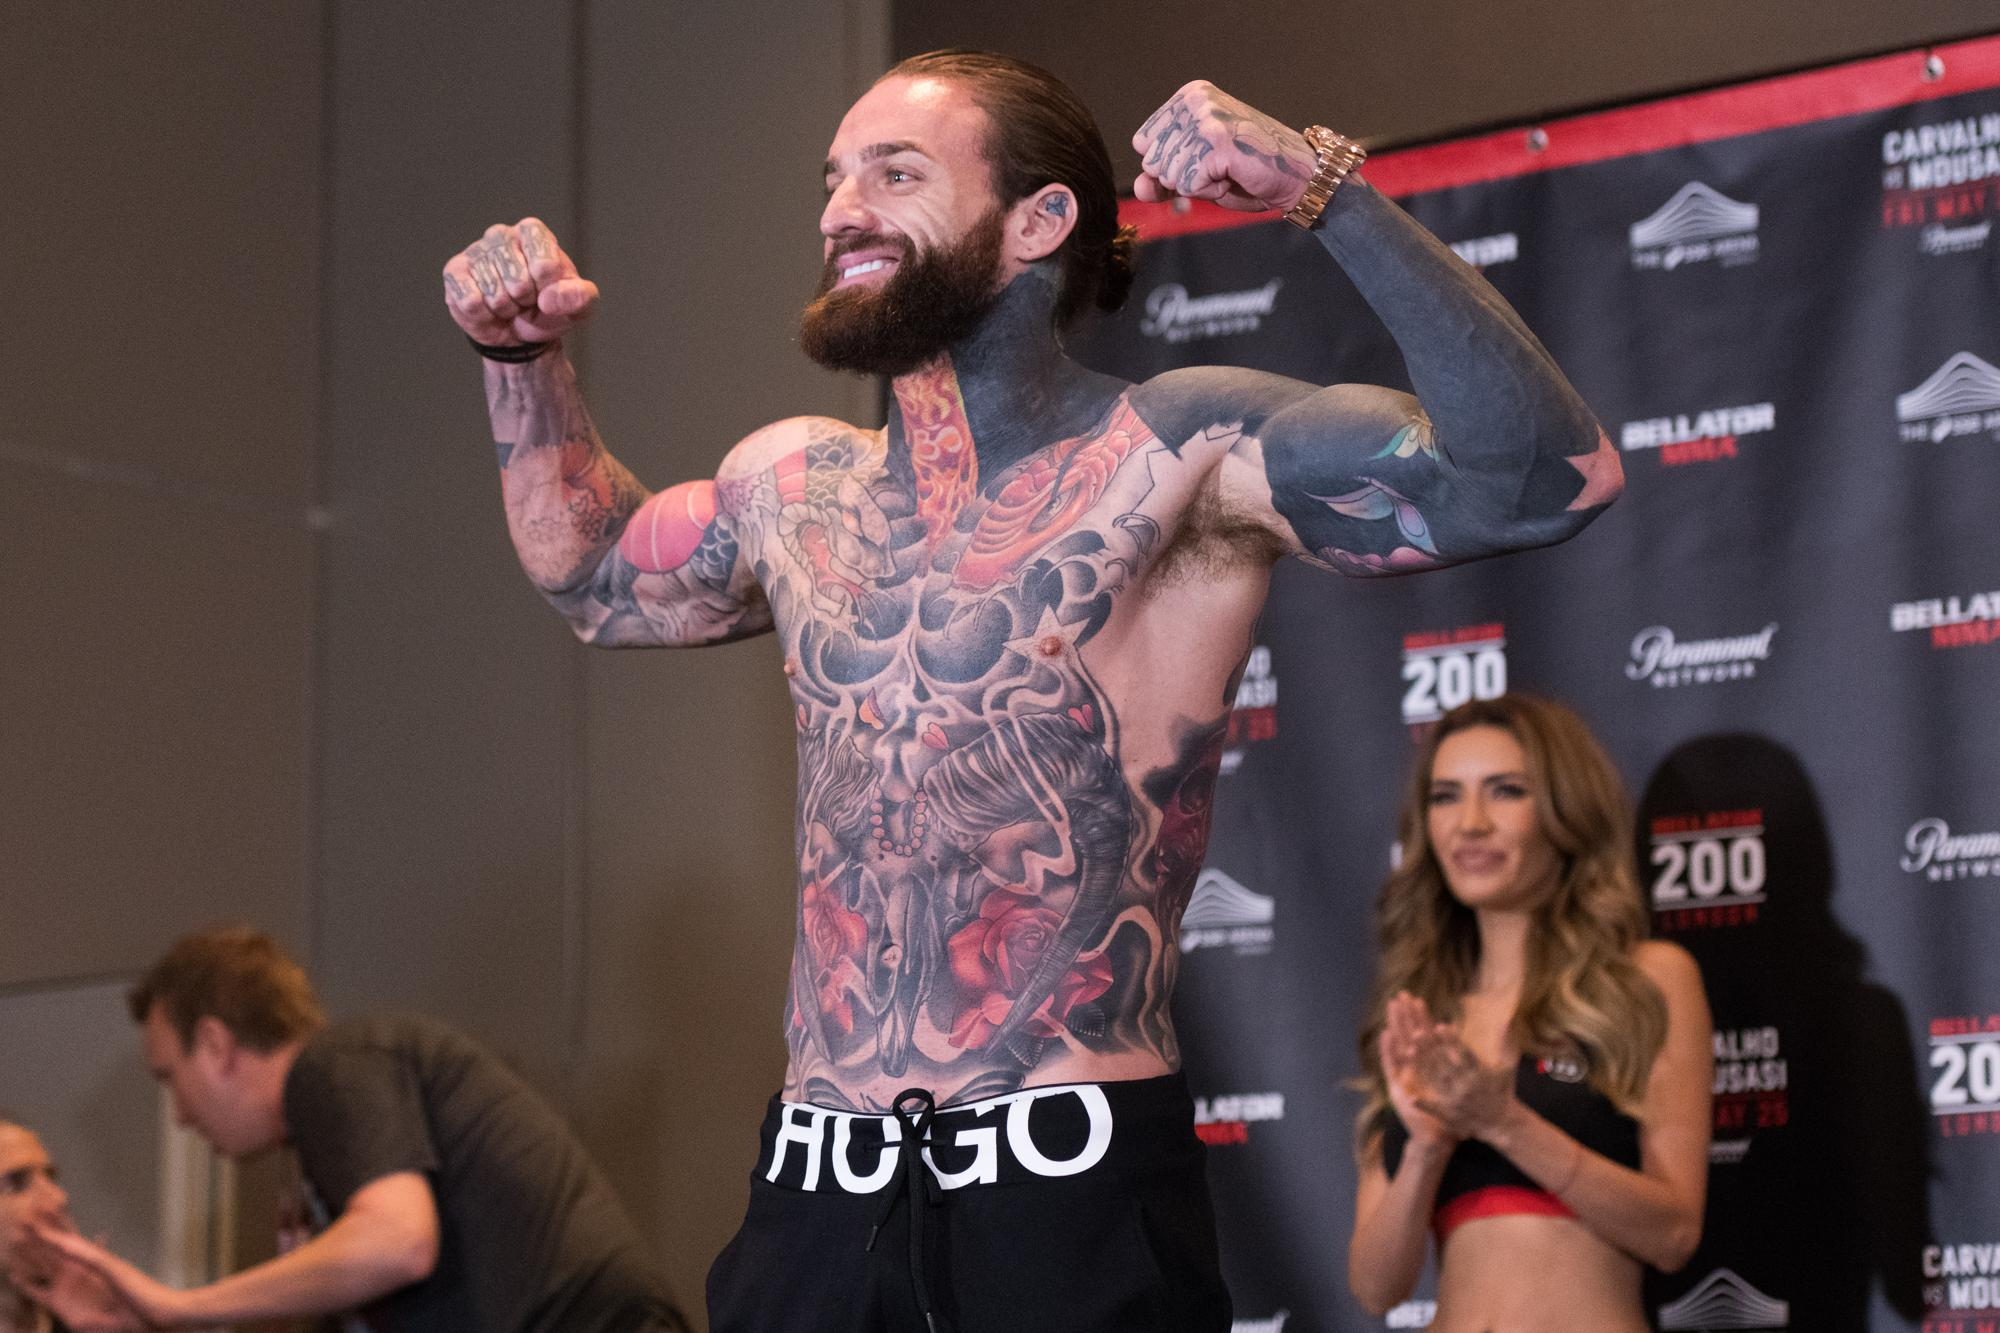 Aaron Chalmers was in confident mood at the weigh-in for his big night at Wembley